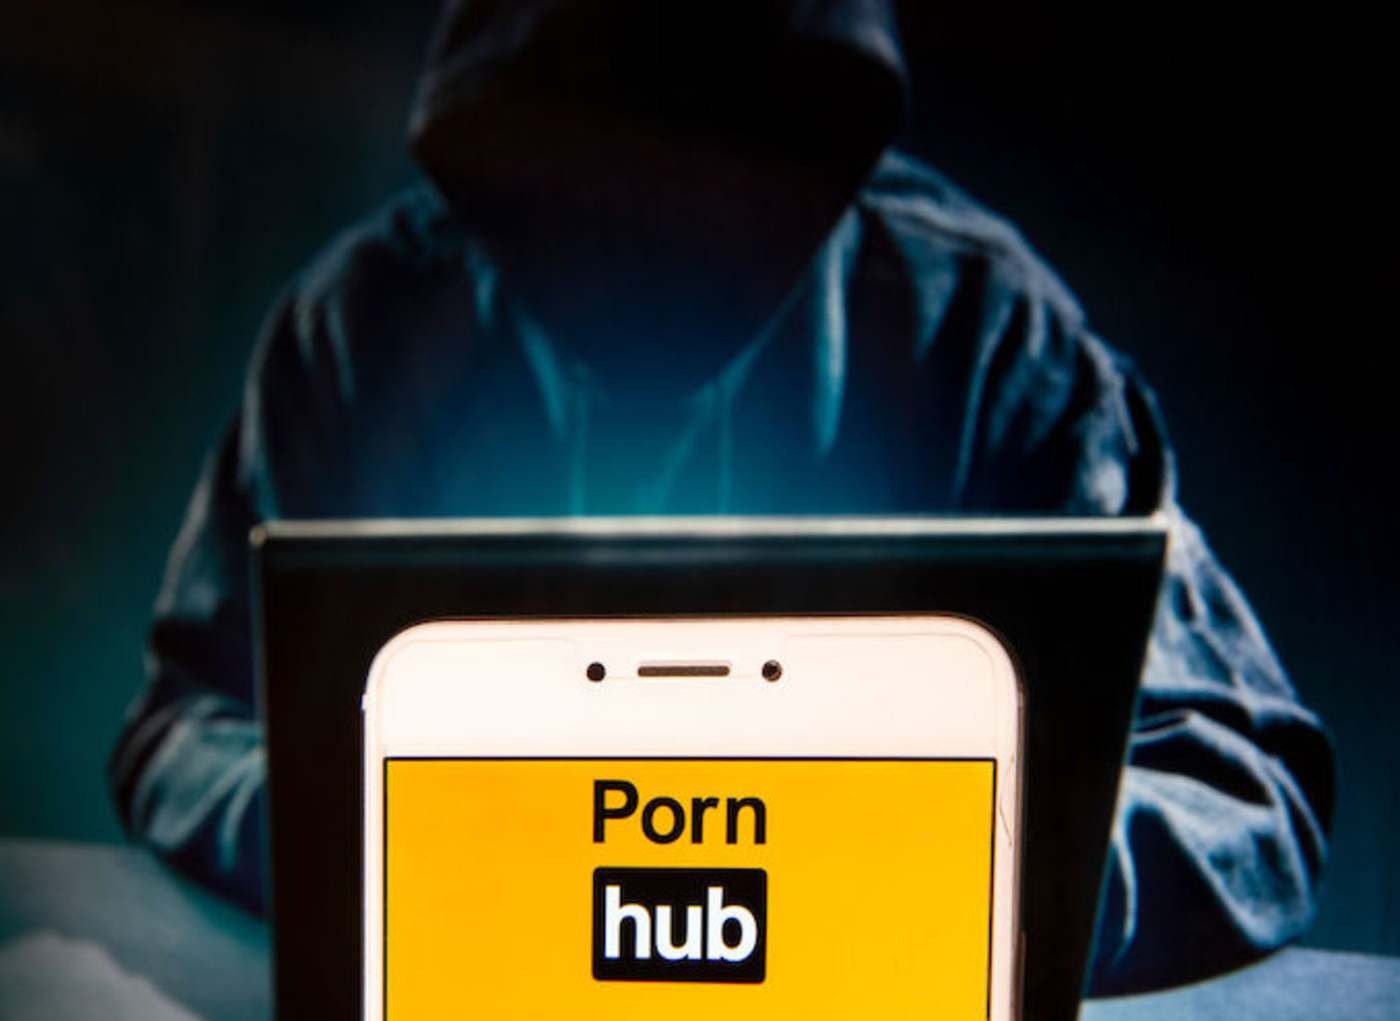 This is a picture of PornHub.